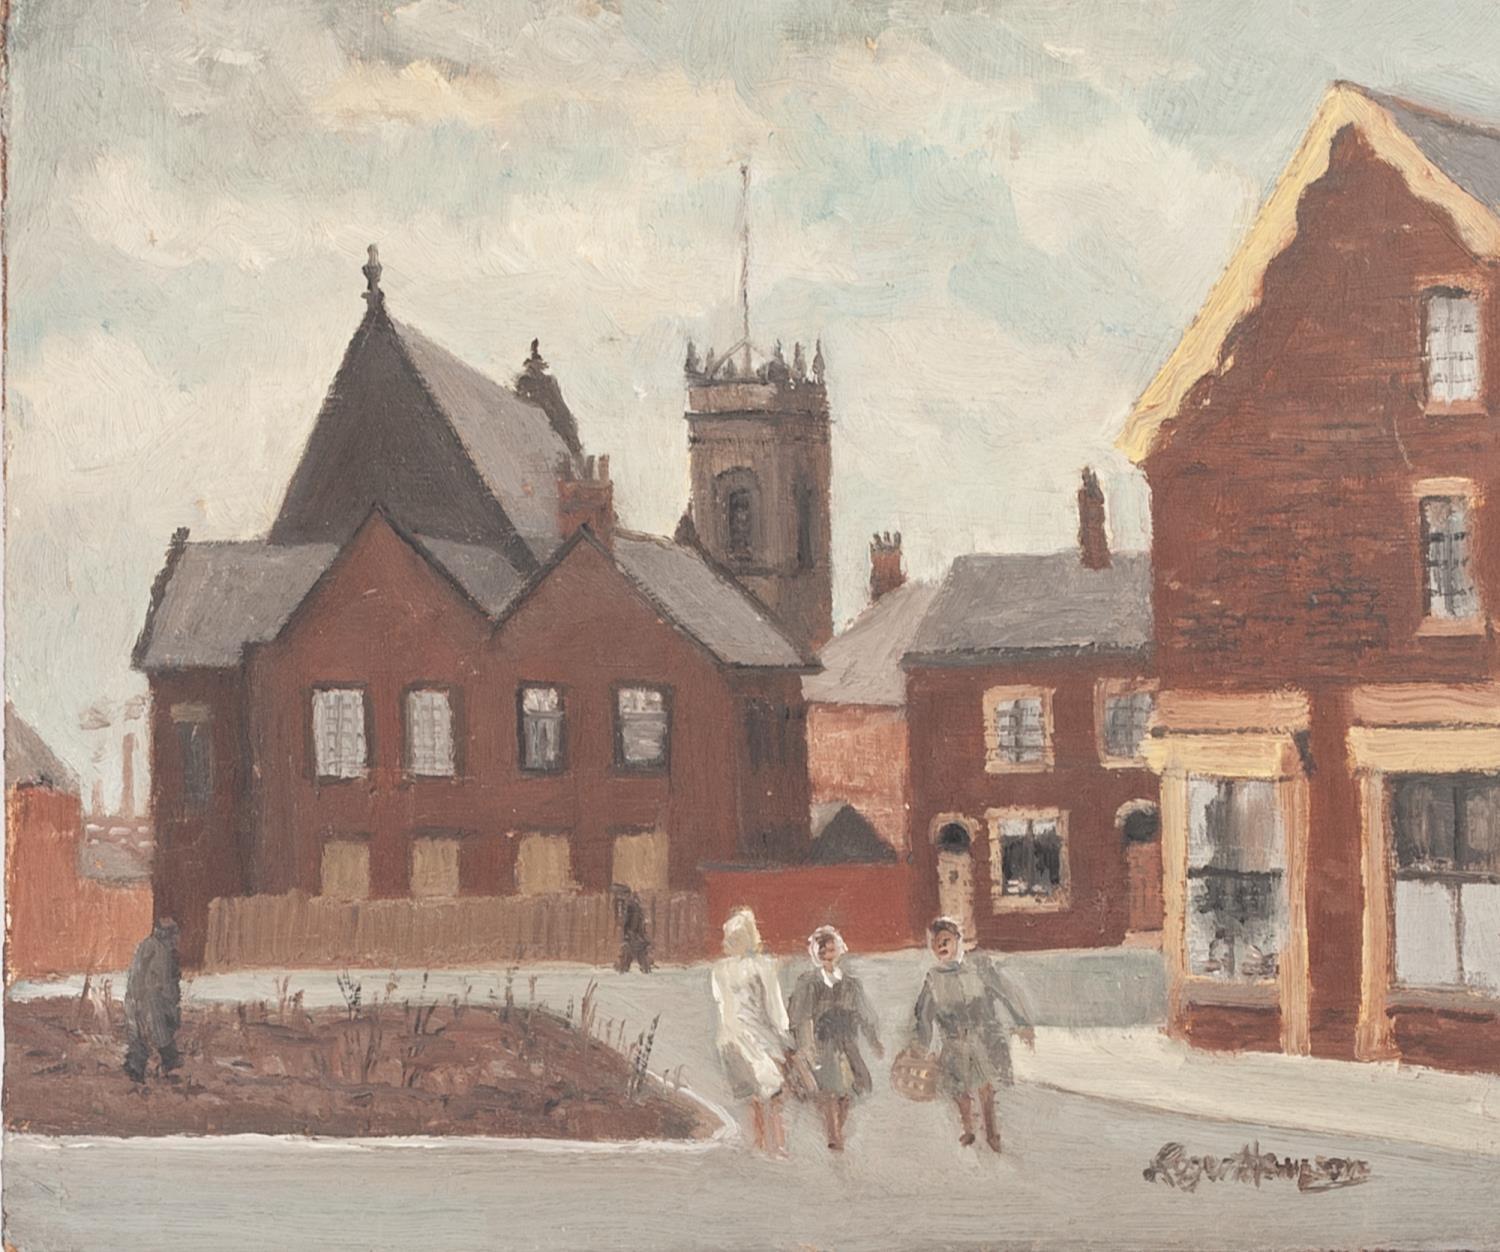 Lot 64 - ROGER HAMPSON (1925 - 1996) OIL PAINTING ON BOARD 'Davenport Street, Bolton' Signed, titled and